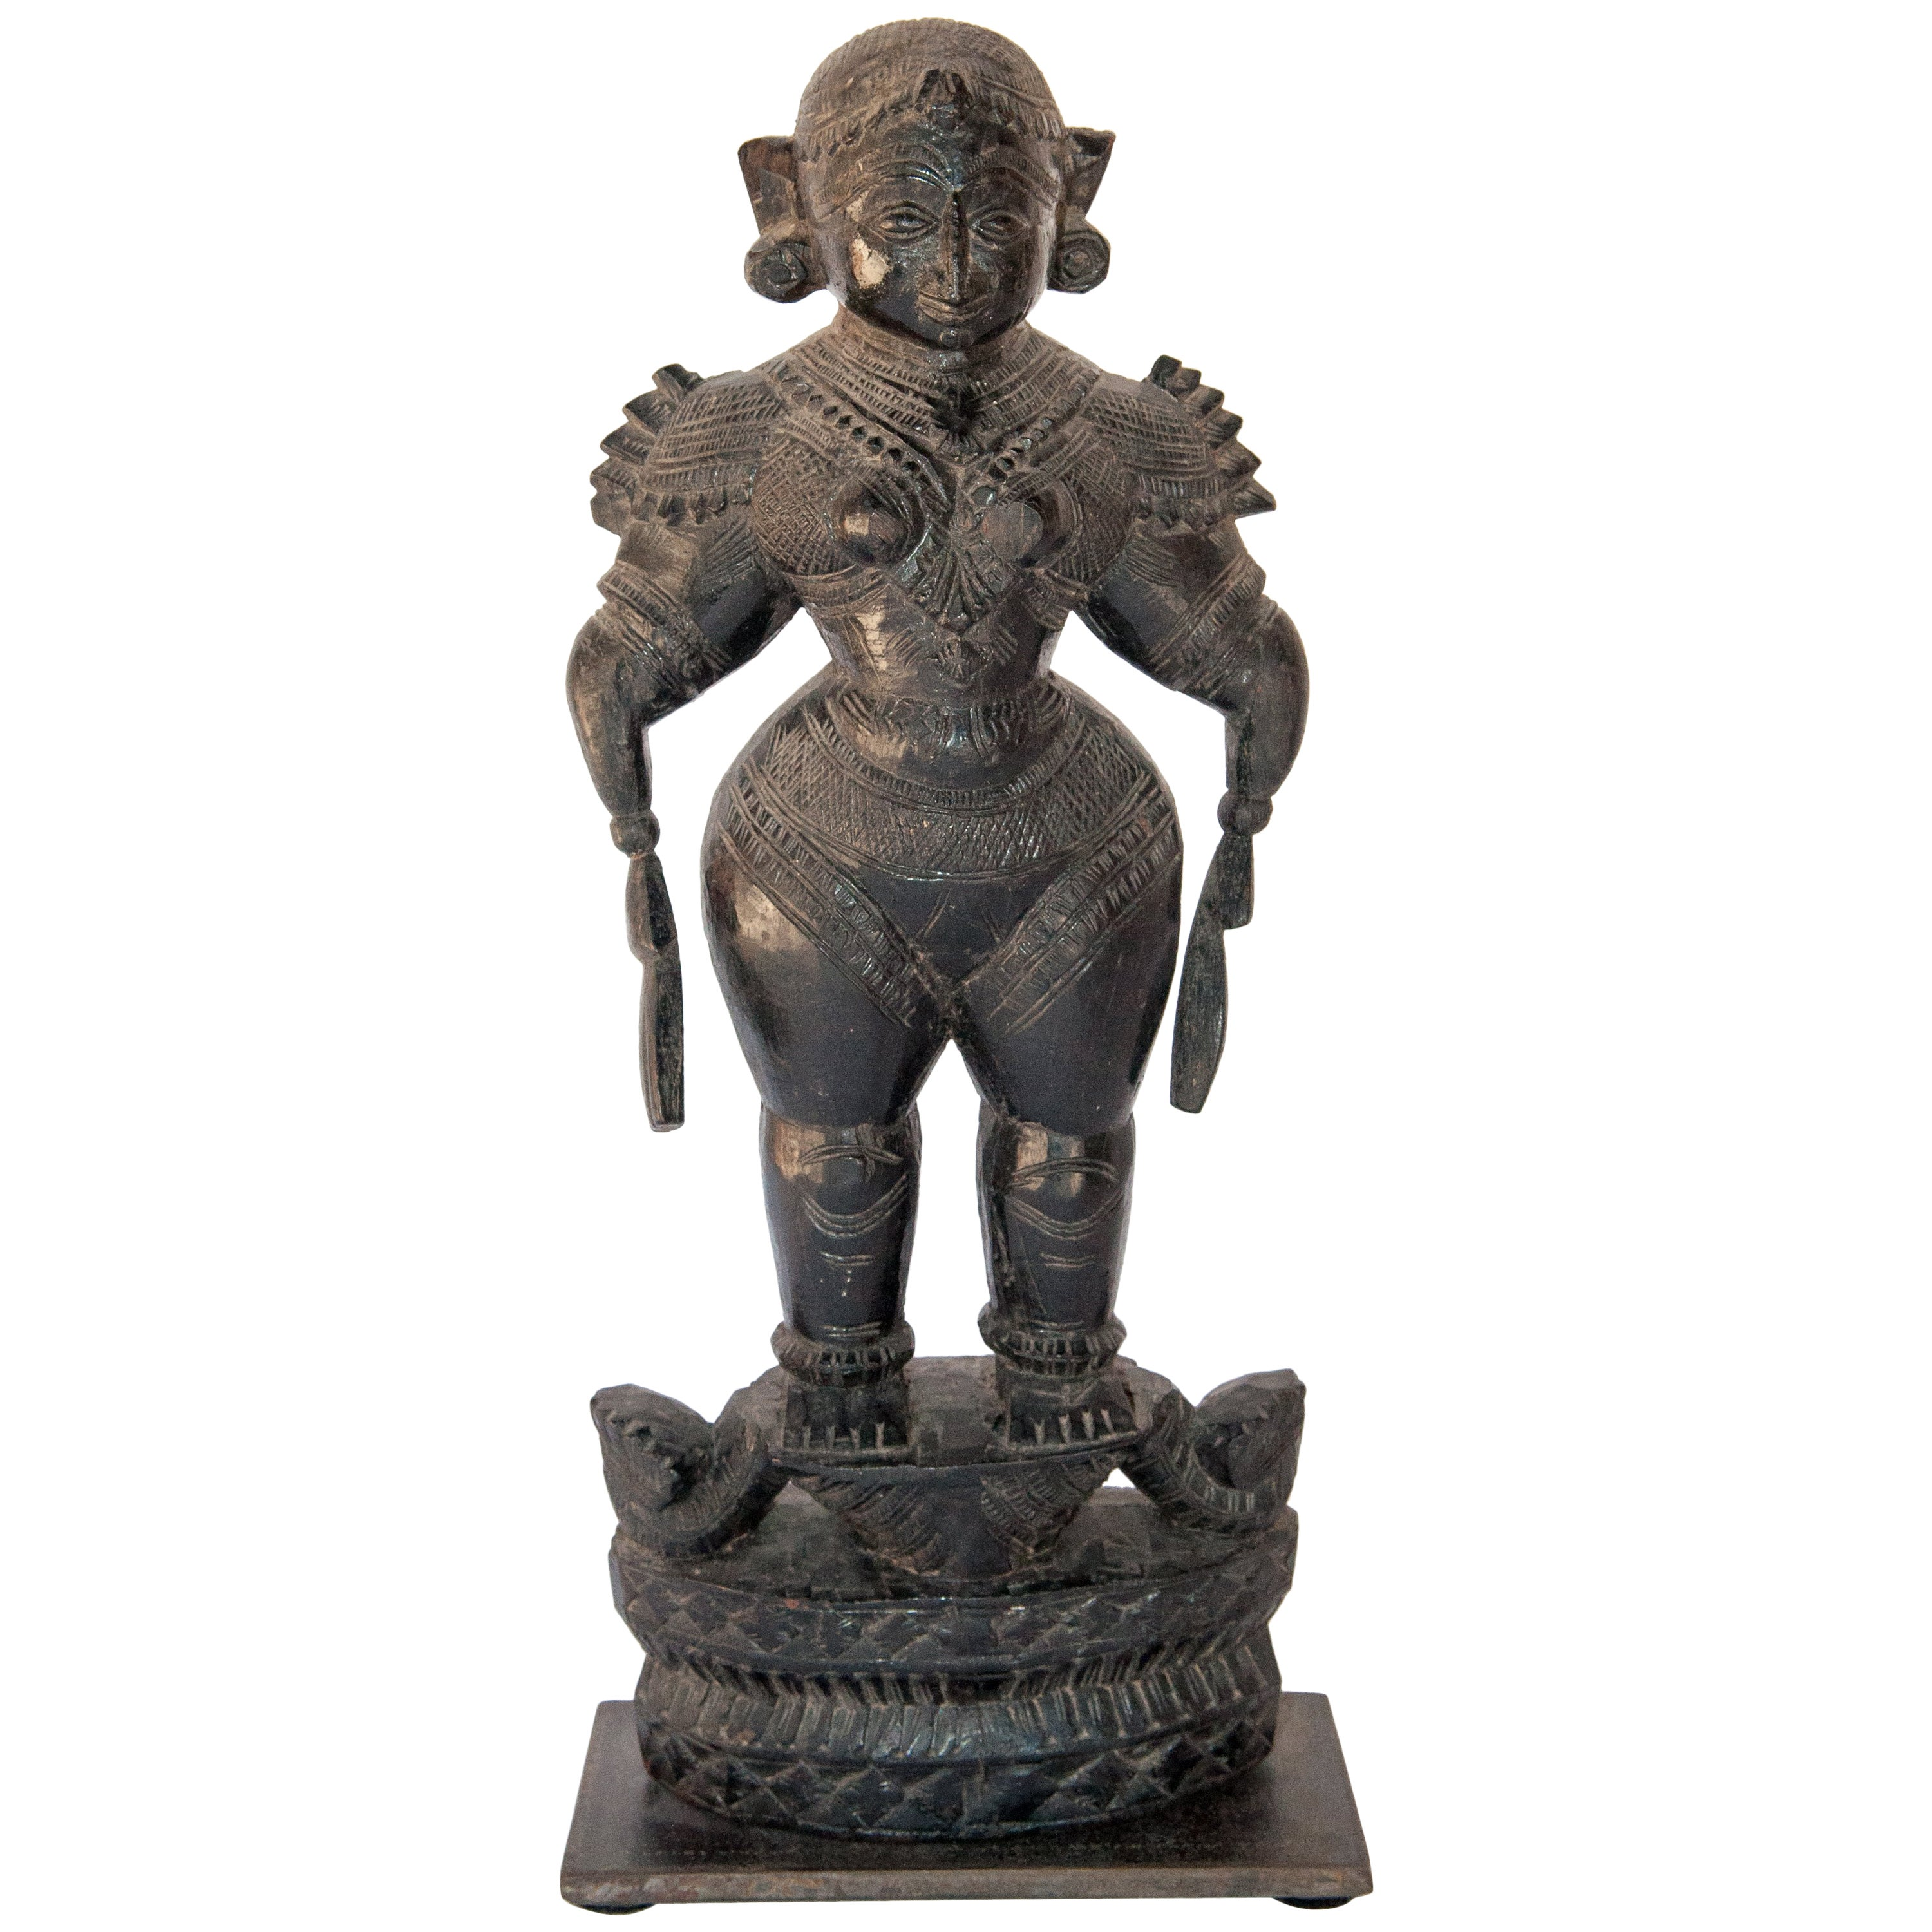 Wood Marapachi Doll from Tamil Nadu, Mid-20th Century, Hand-Carved & Blackened